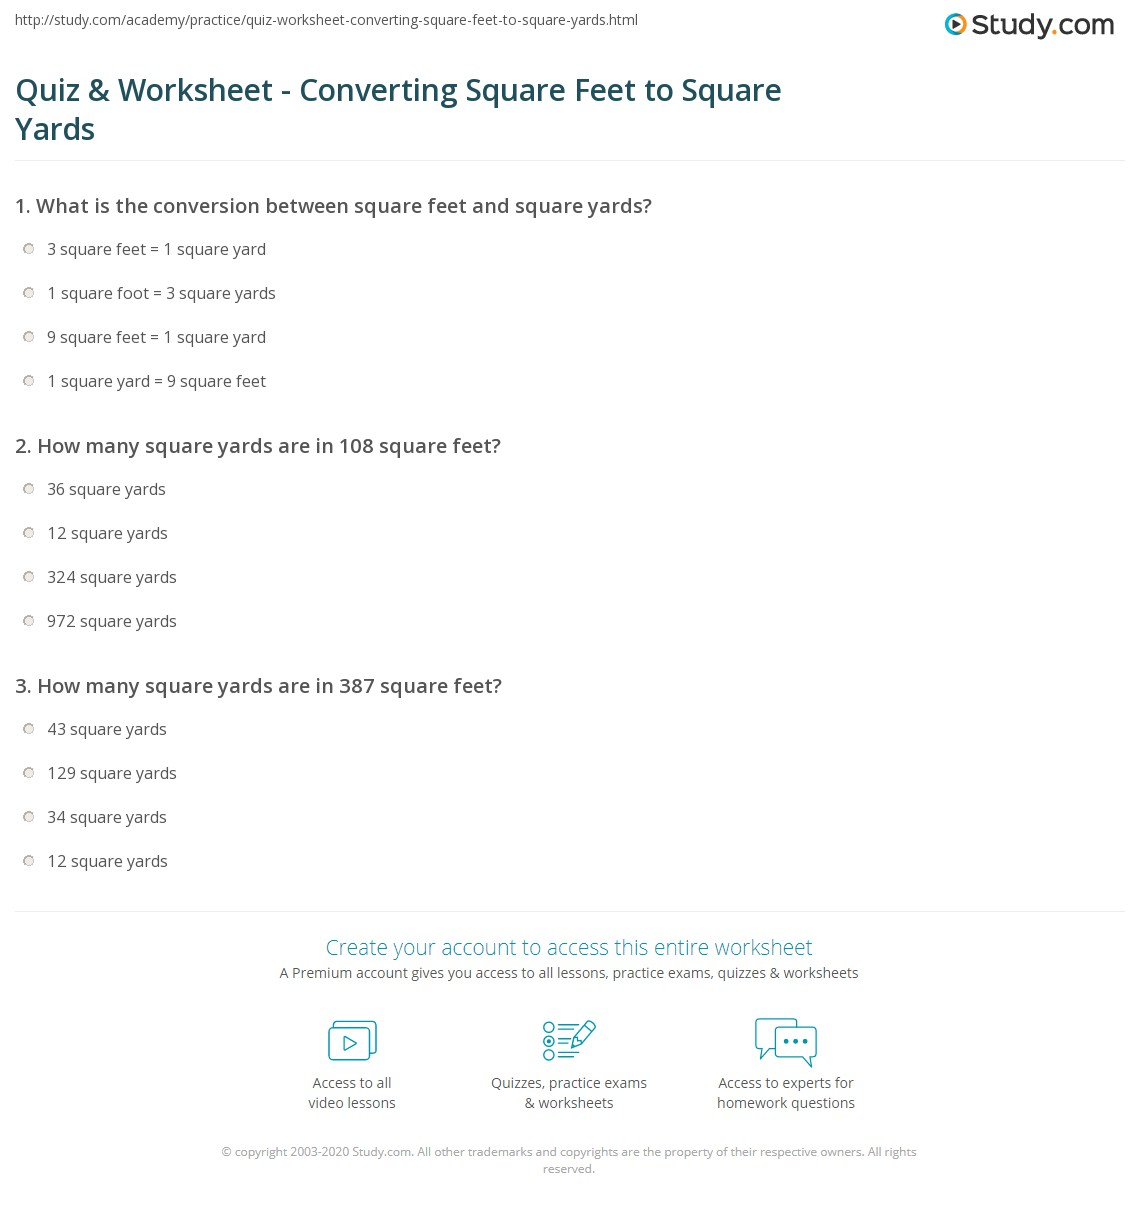 quiz worksheet converting square feet to square yards. Black Bedroom Furniture Sets. Home Design Ideas